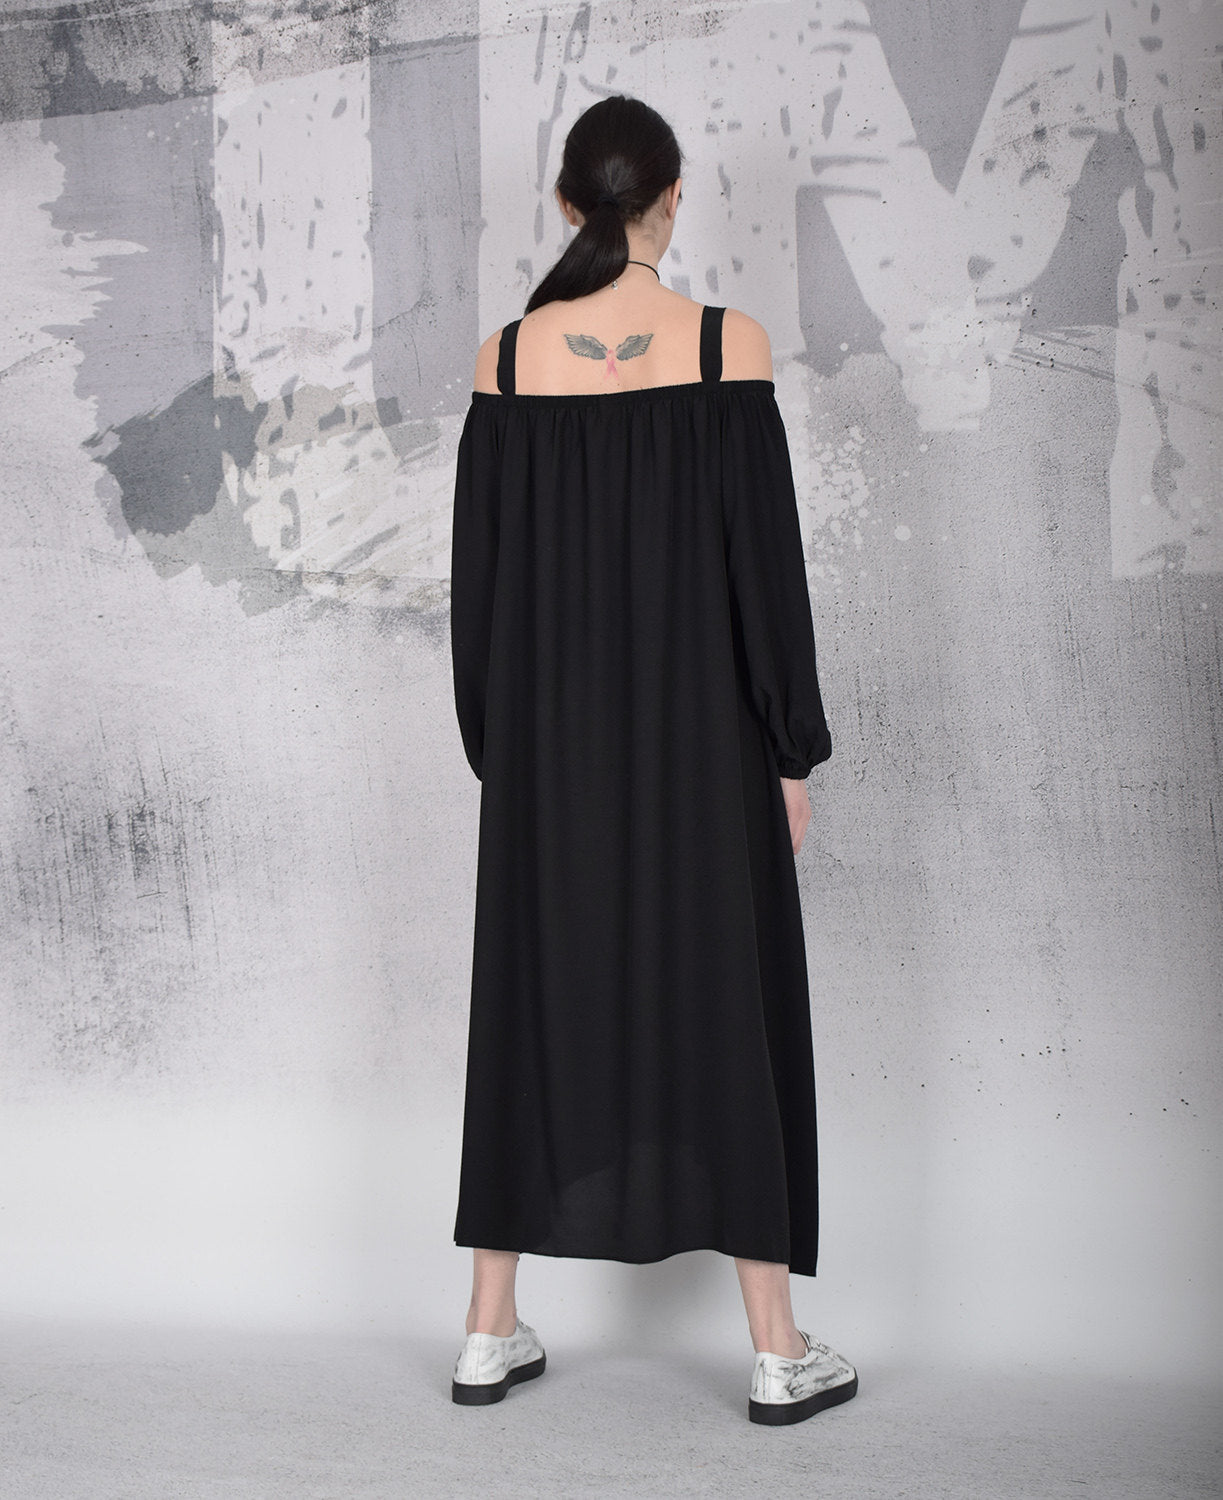 Black Maxi Dress, Long loose dress, Bare shoulders dress, Long sleeved dress, Sleeveless dress by UrbanMood - UM-100-VC